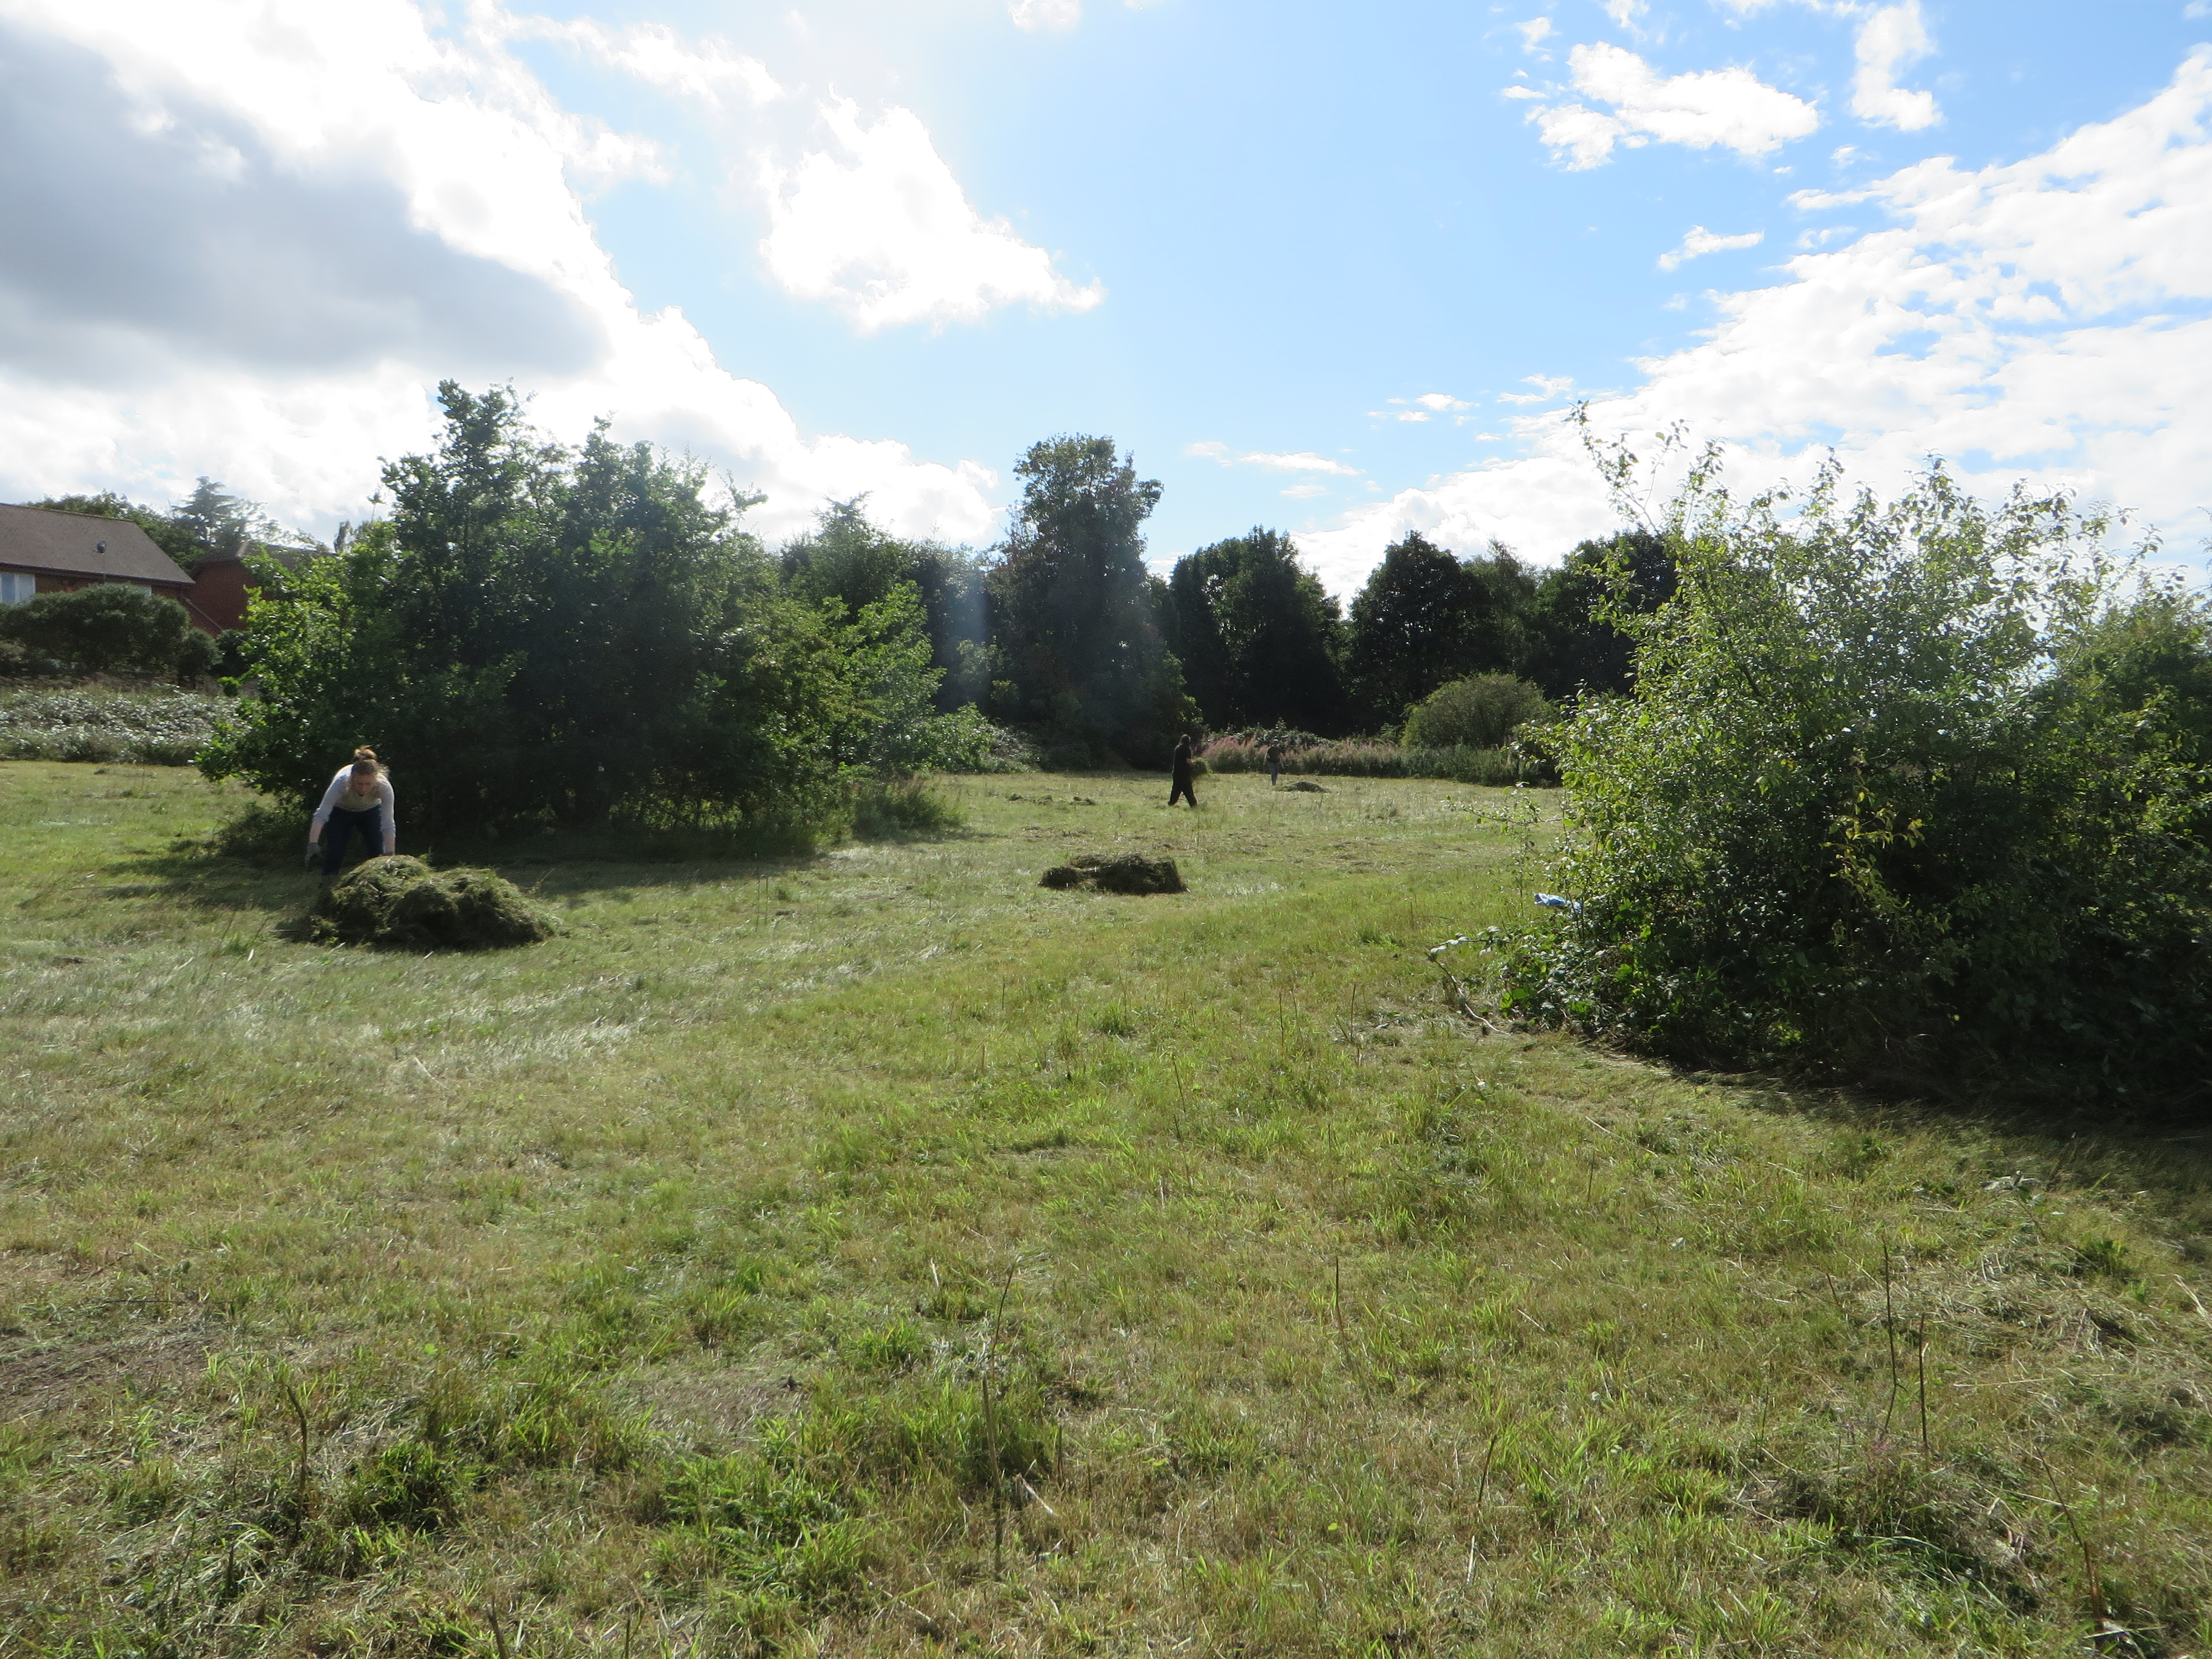 The 'receptor' site with piles of 'green hay' ready for scattering.